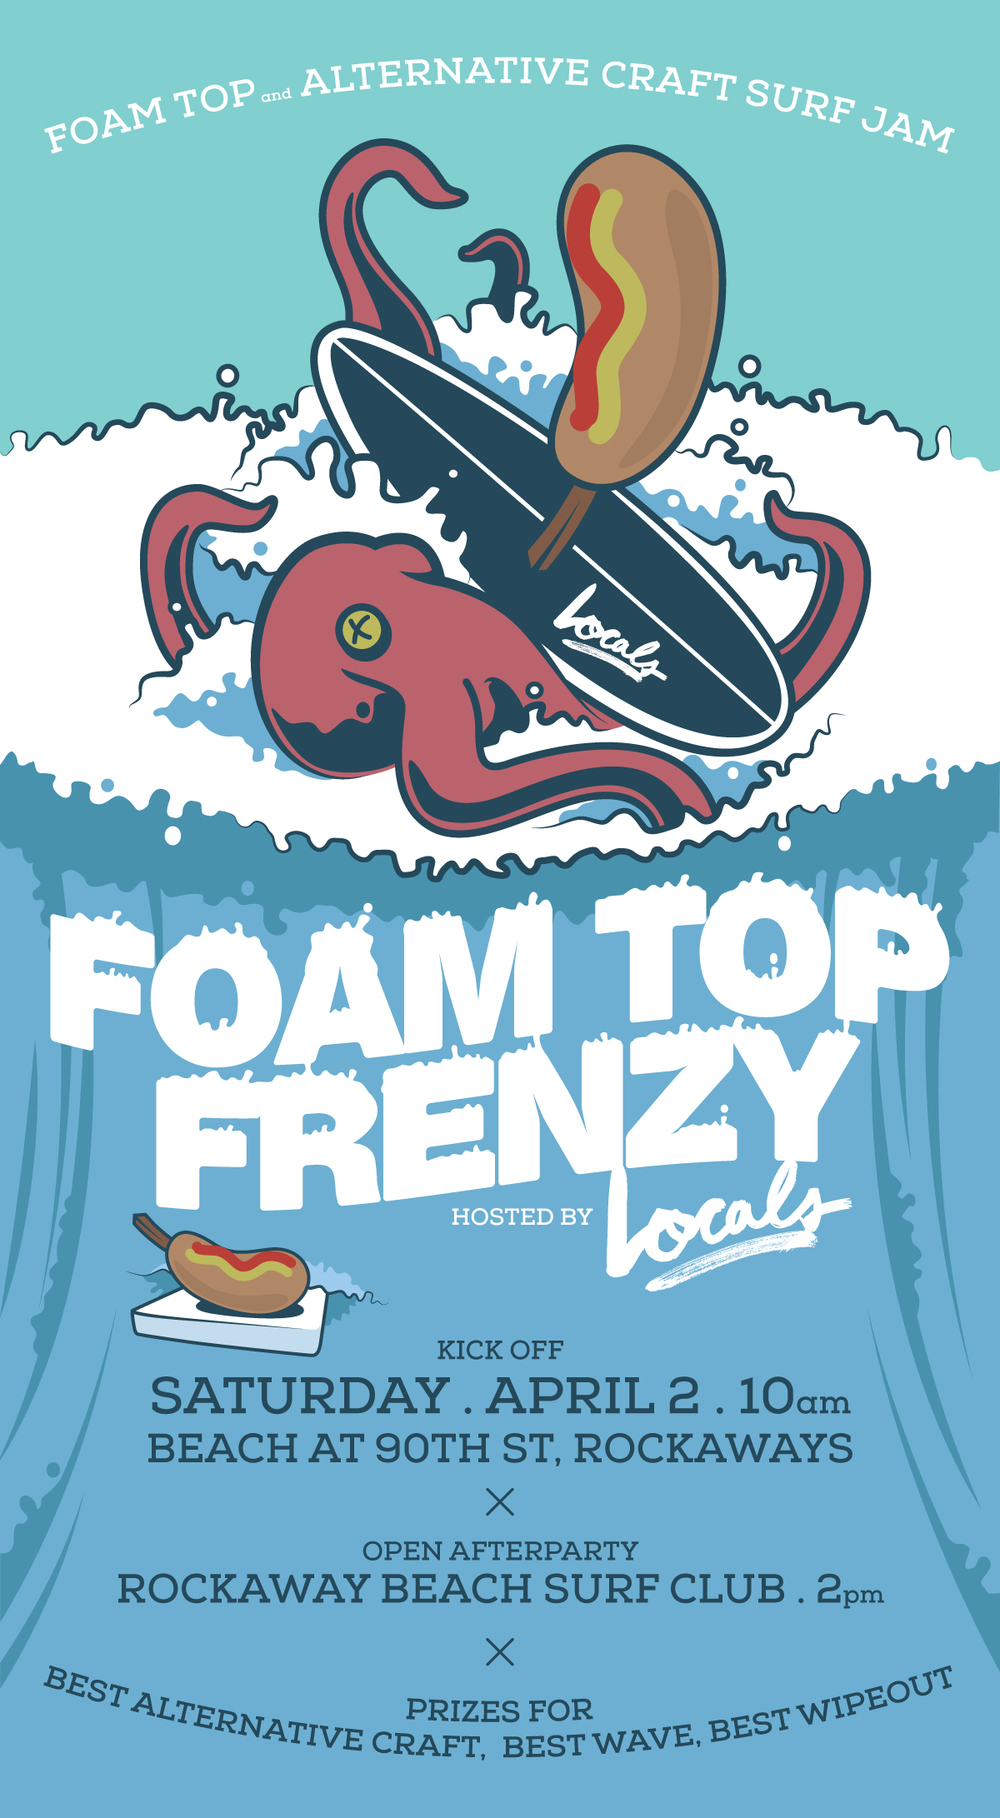 rbsc locals party foam top